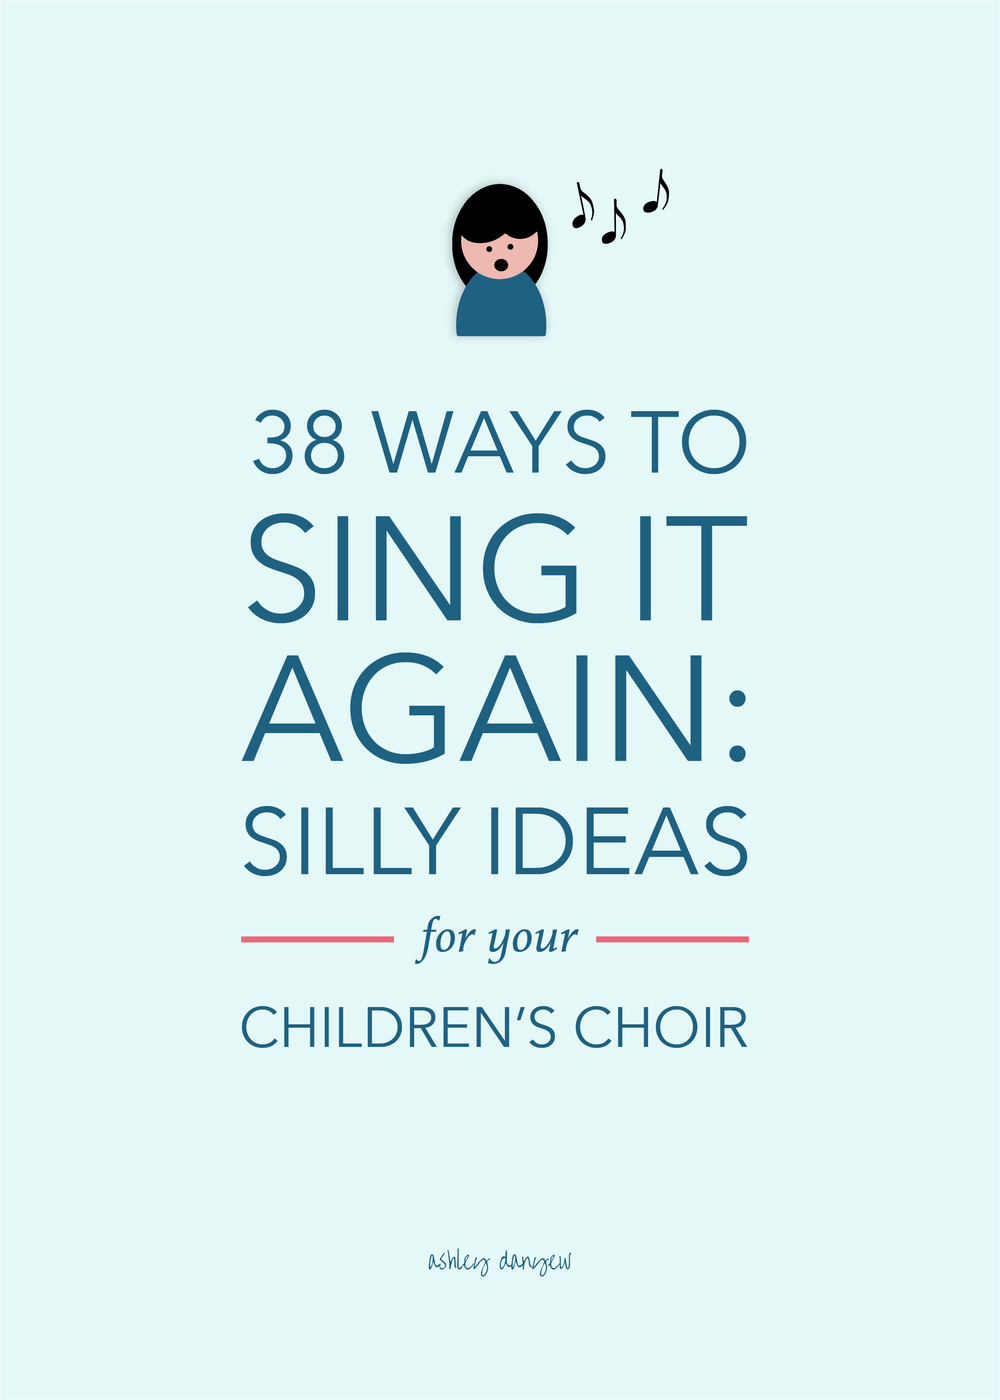 38 Ways to Sing it Again - Silly Ideas for Your Children's Choir.png